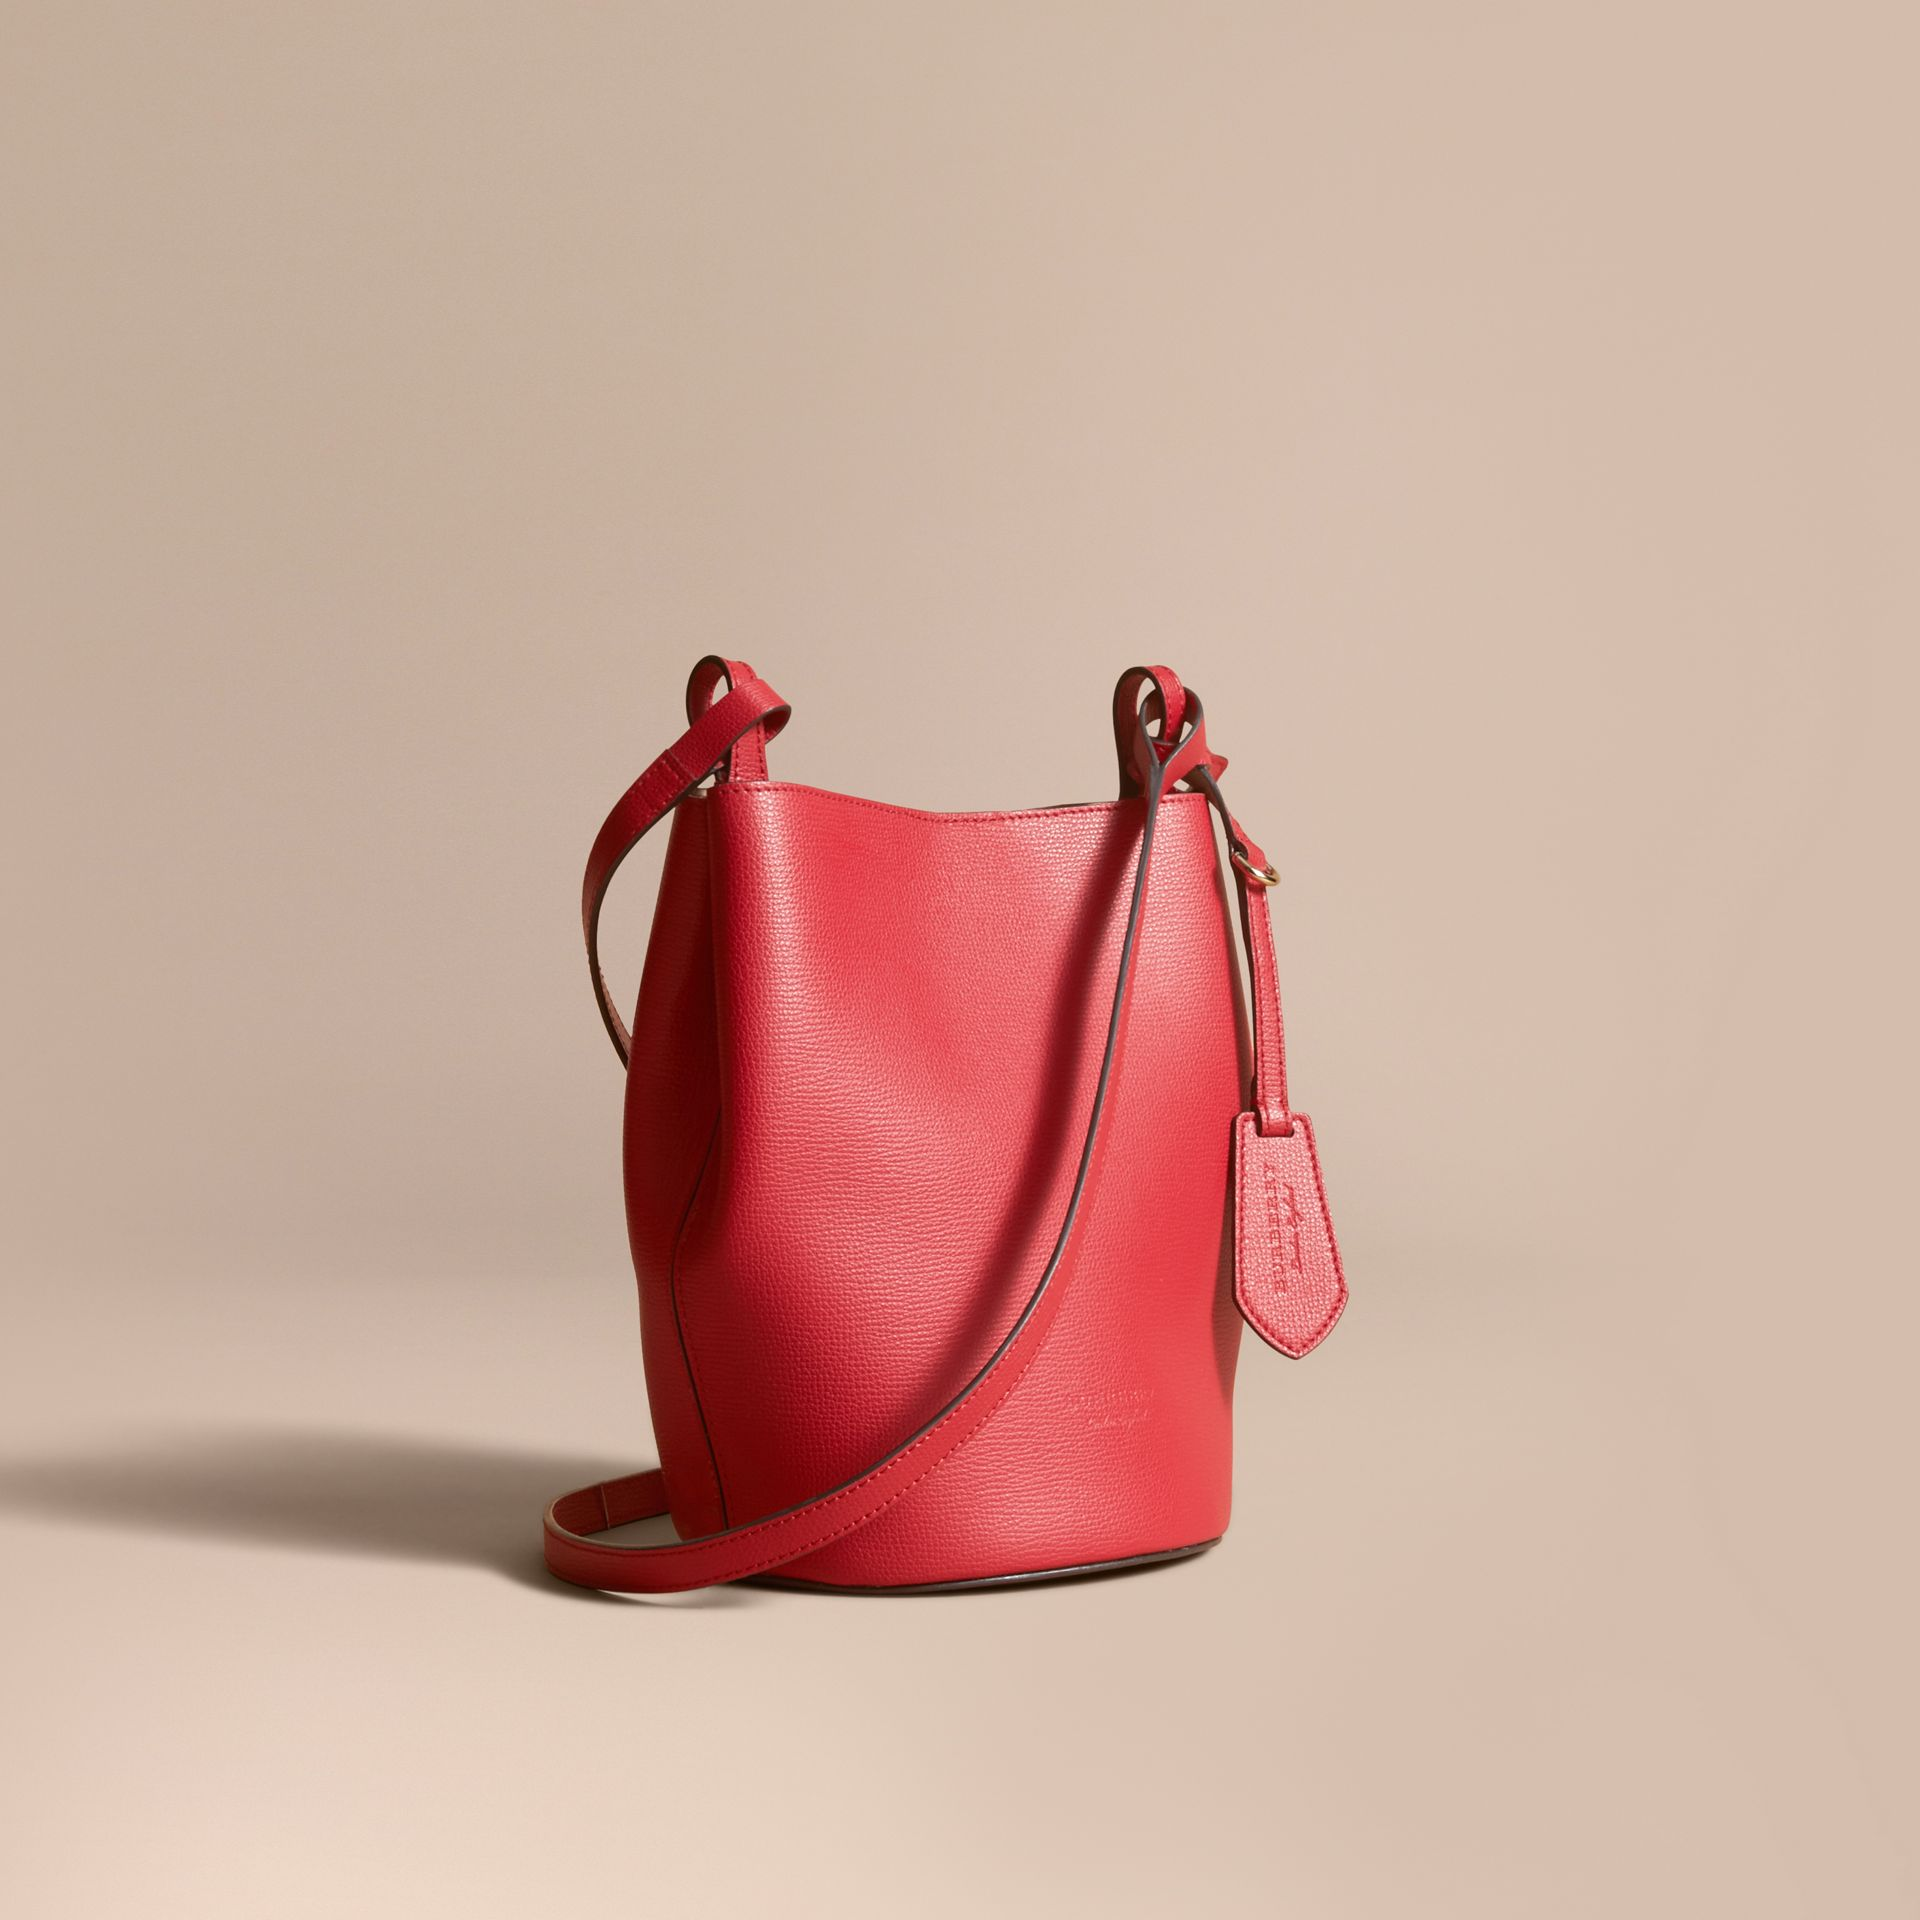 Leather and Haymarket Check Crossbody Bucket Bag in Poppy Red - Women | Burberry Australia - gallery image 1